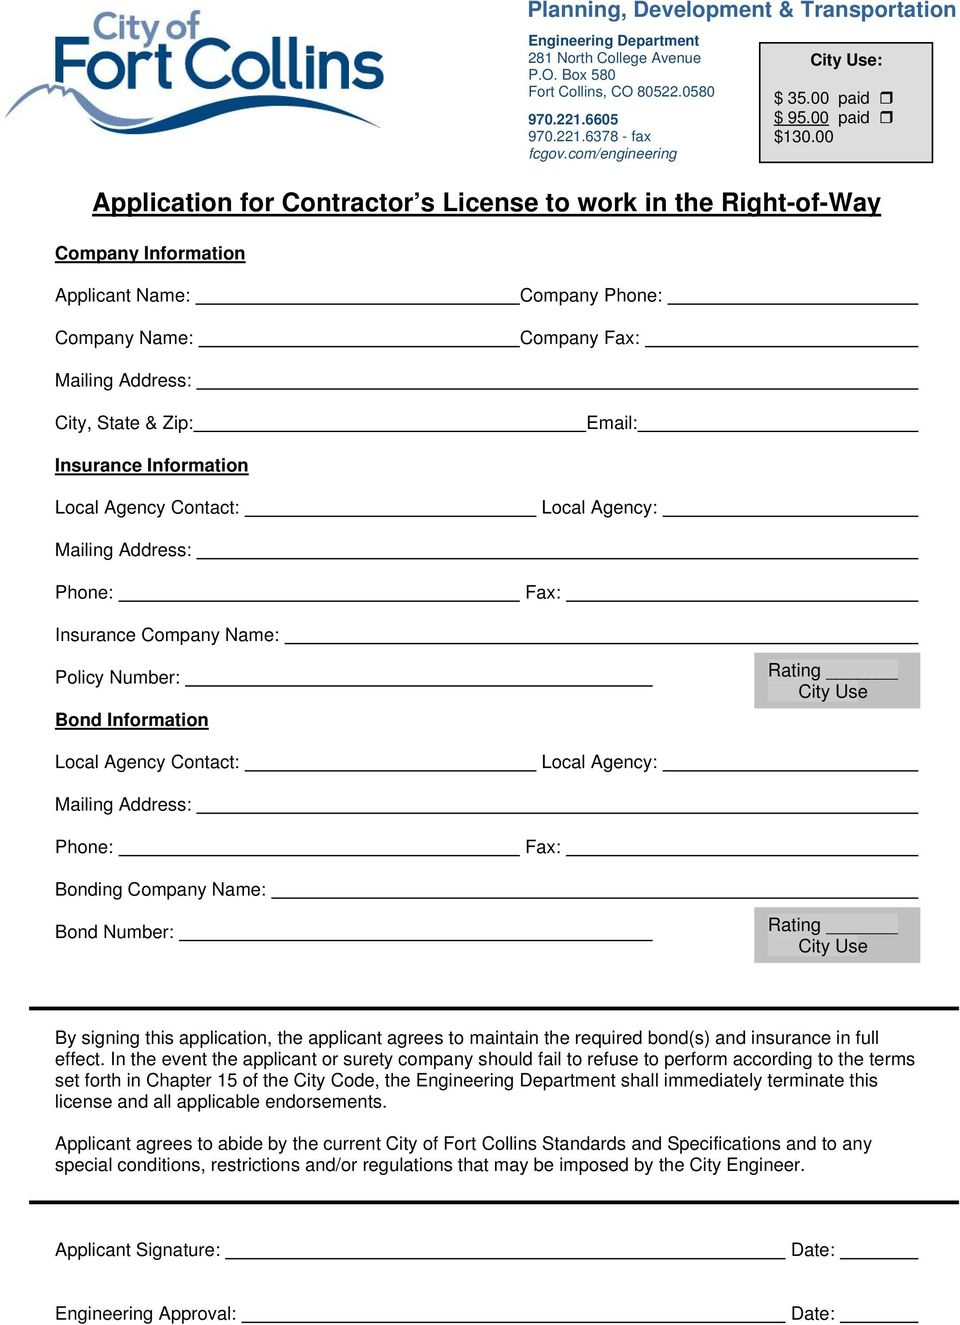 00 Applicant Name: Company Name: Company Phone: Company Fax: Mailing Address: City, State & Zip: Email: Insurance Information Local Agency Contact: Local Agency: Mailing Address: Phone: Fax: